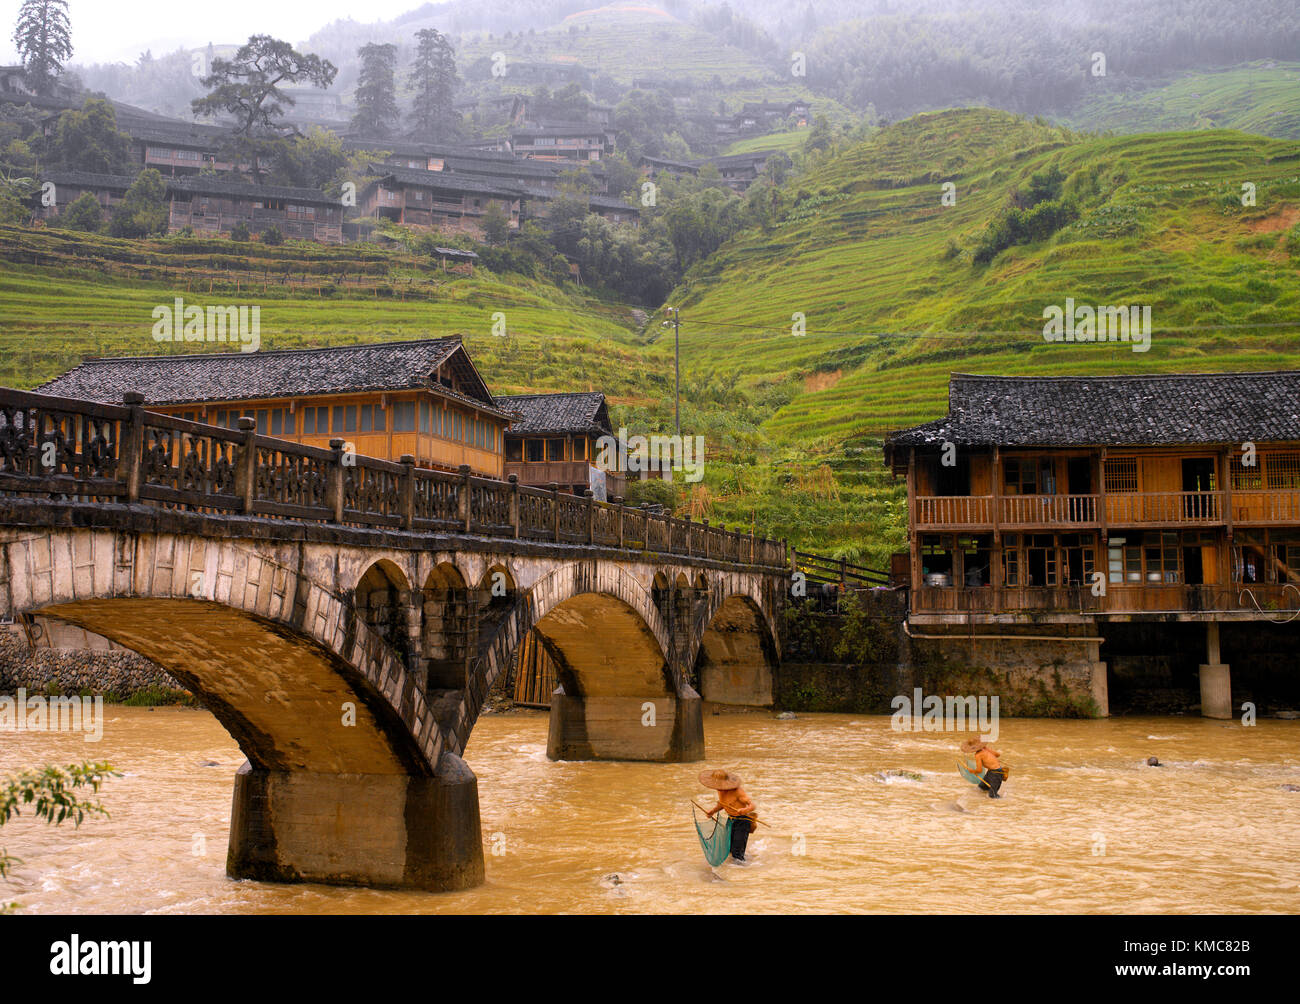 Fishermen in a river at Longsheng near Guilin in the Guangxi Zhuang region of the Peoples Republic of China. - Stock Image